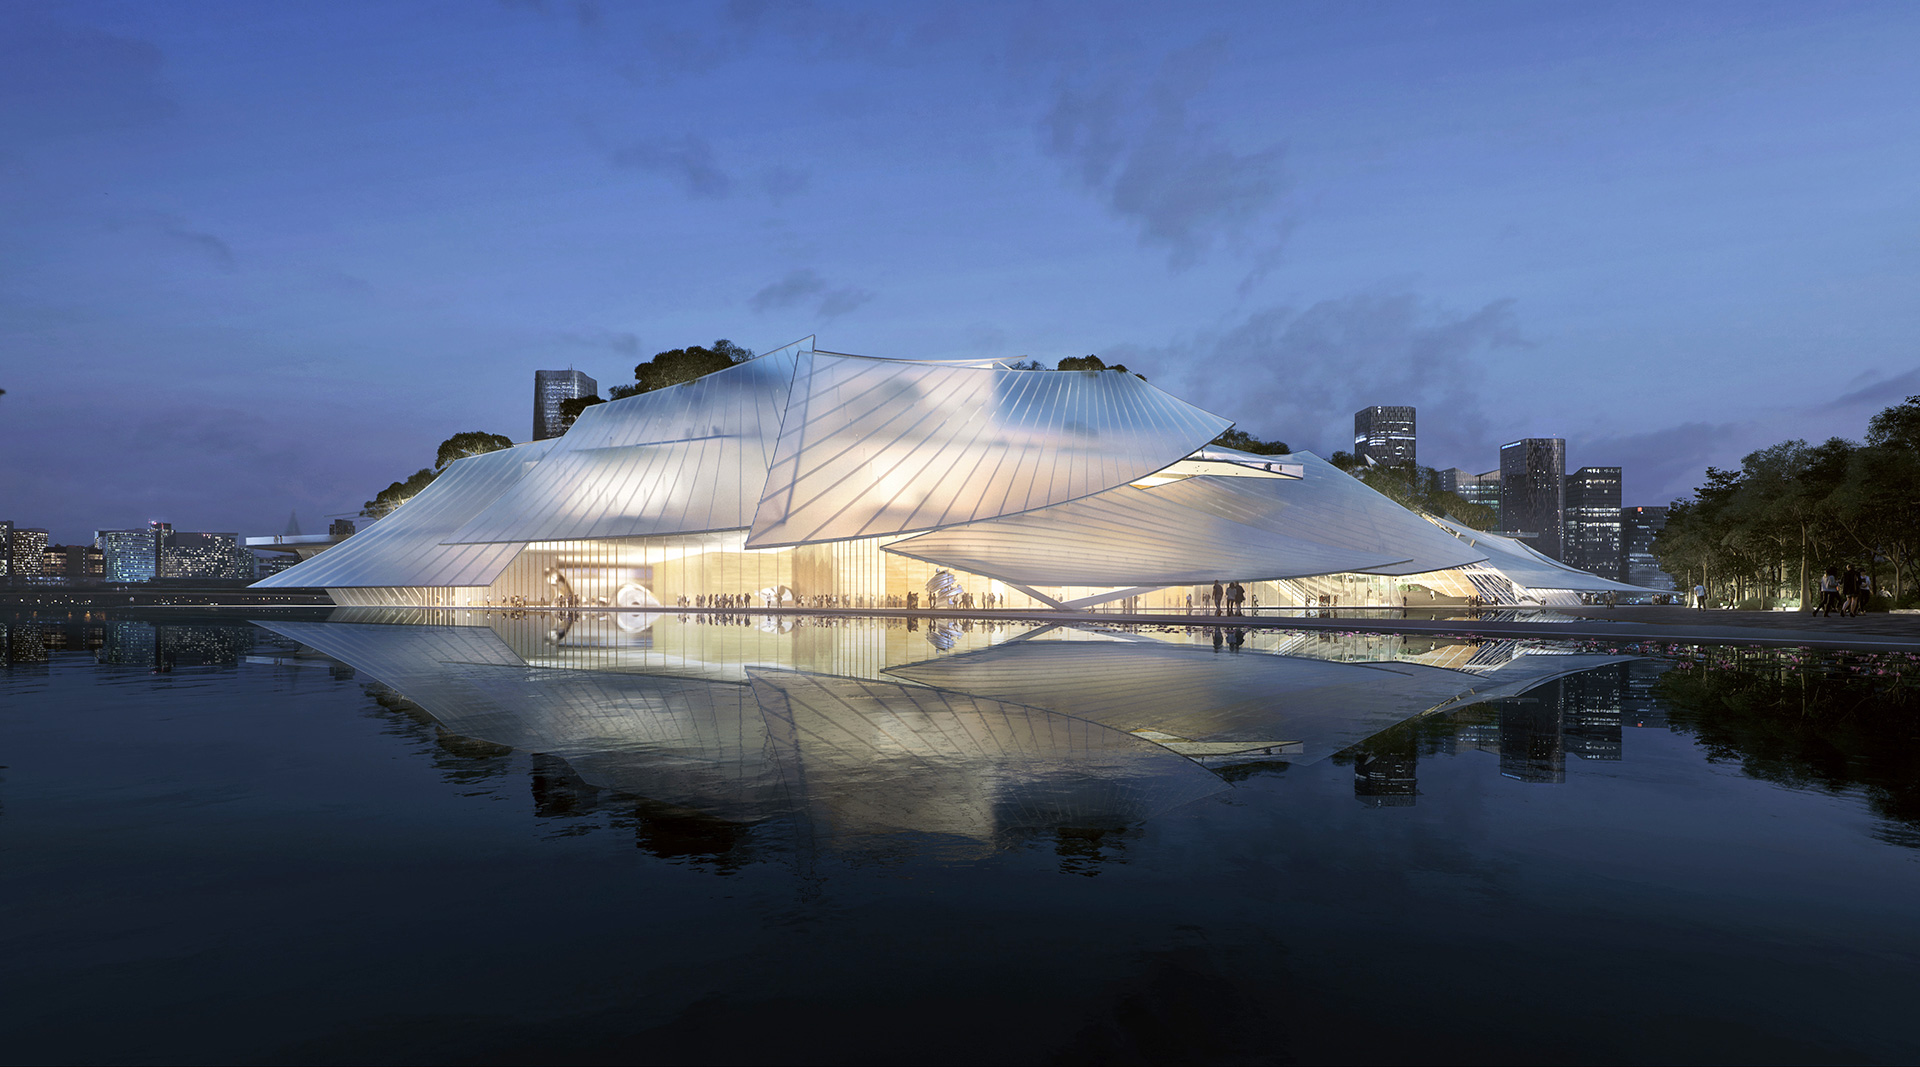 MAD has designed Yiwu Grand Theater as a floating boat in the Dongyang waters | Yiwu Grand Theater | MAD Architects | STIR